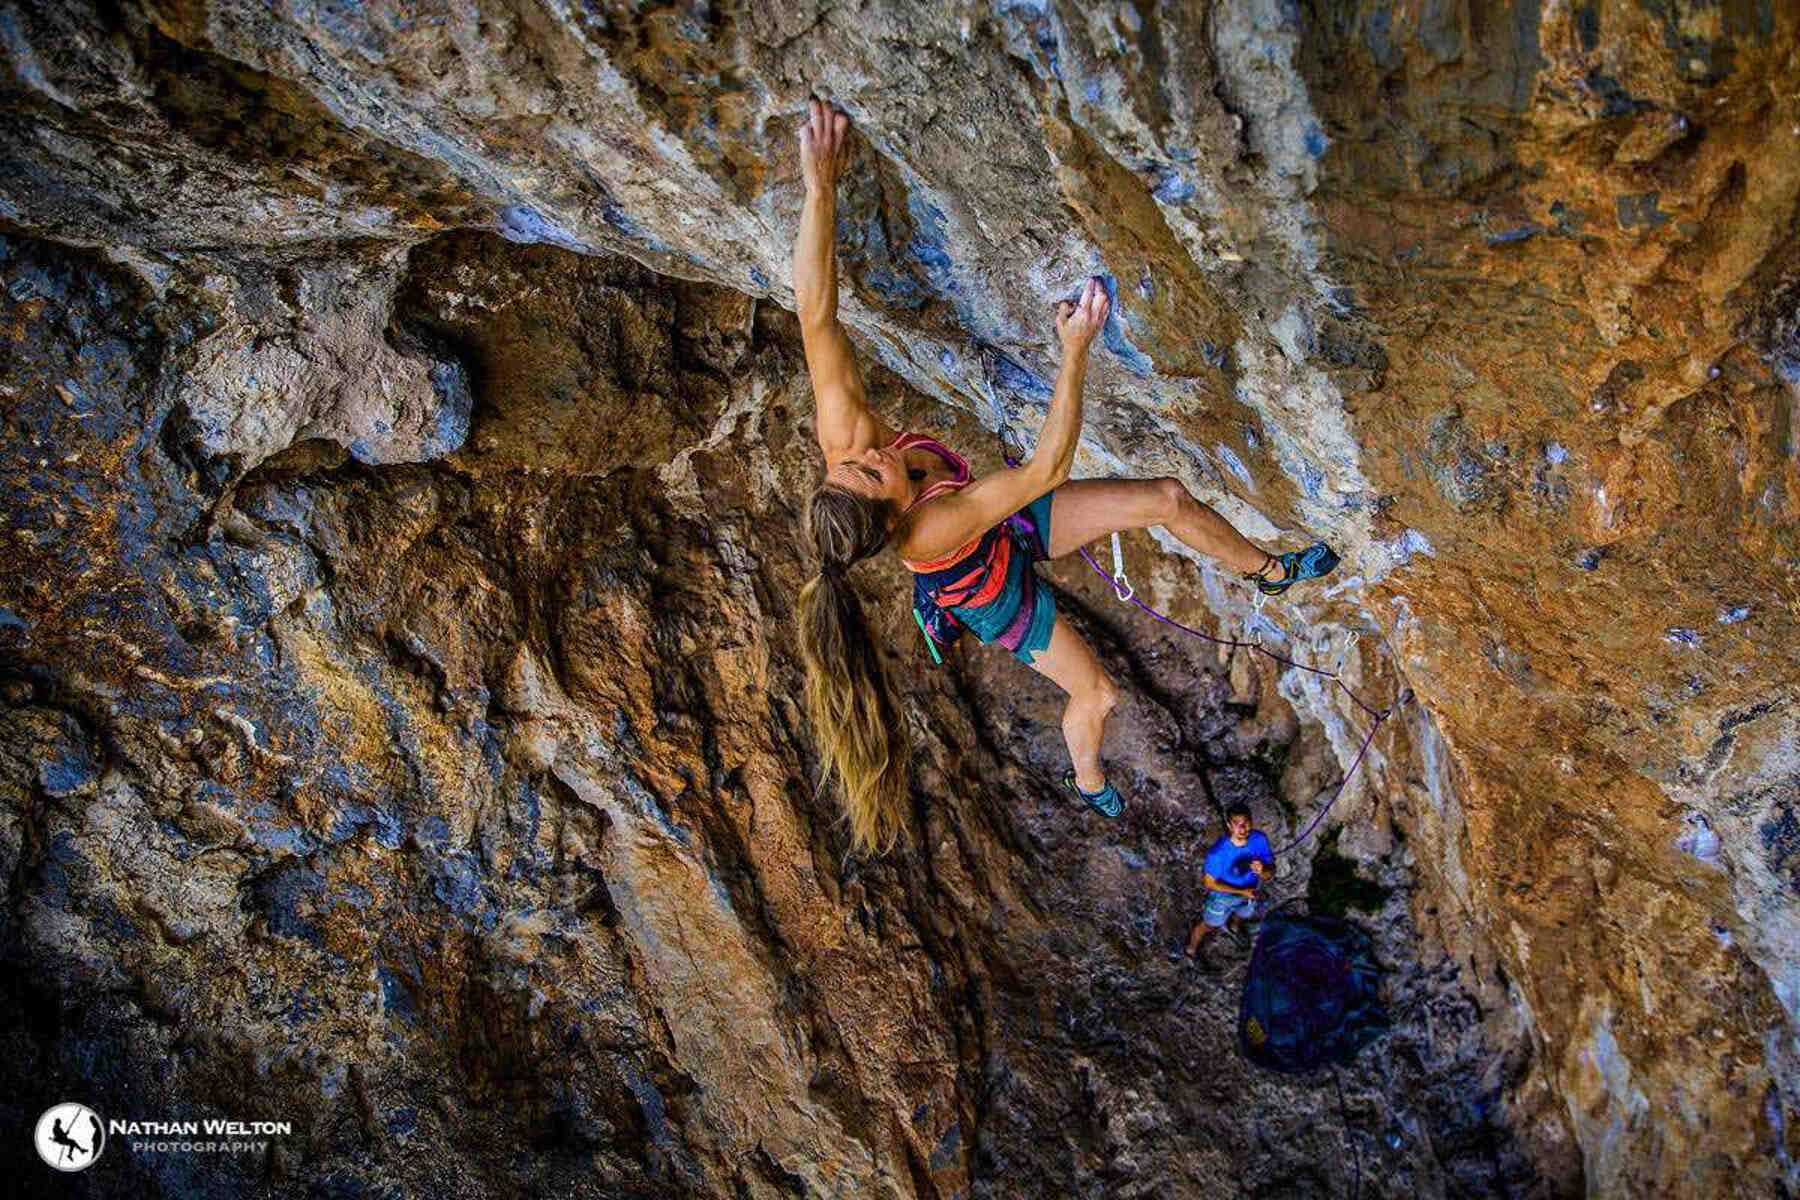 Rannveig Aamodt  - FrictionLabs Rock Climbing Chalk Pro Athlete - photo credit Nathan Welton Photography